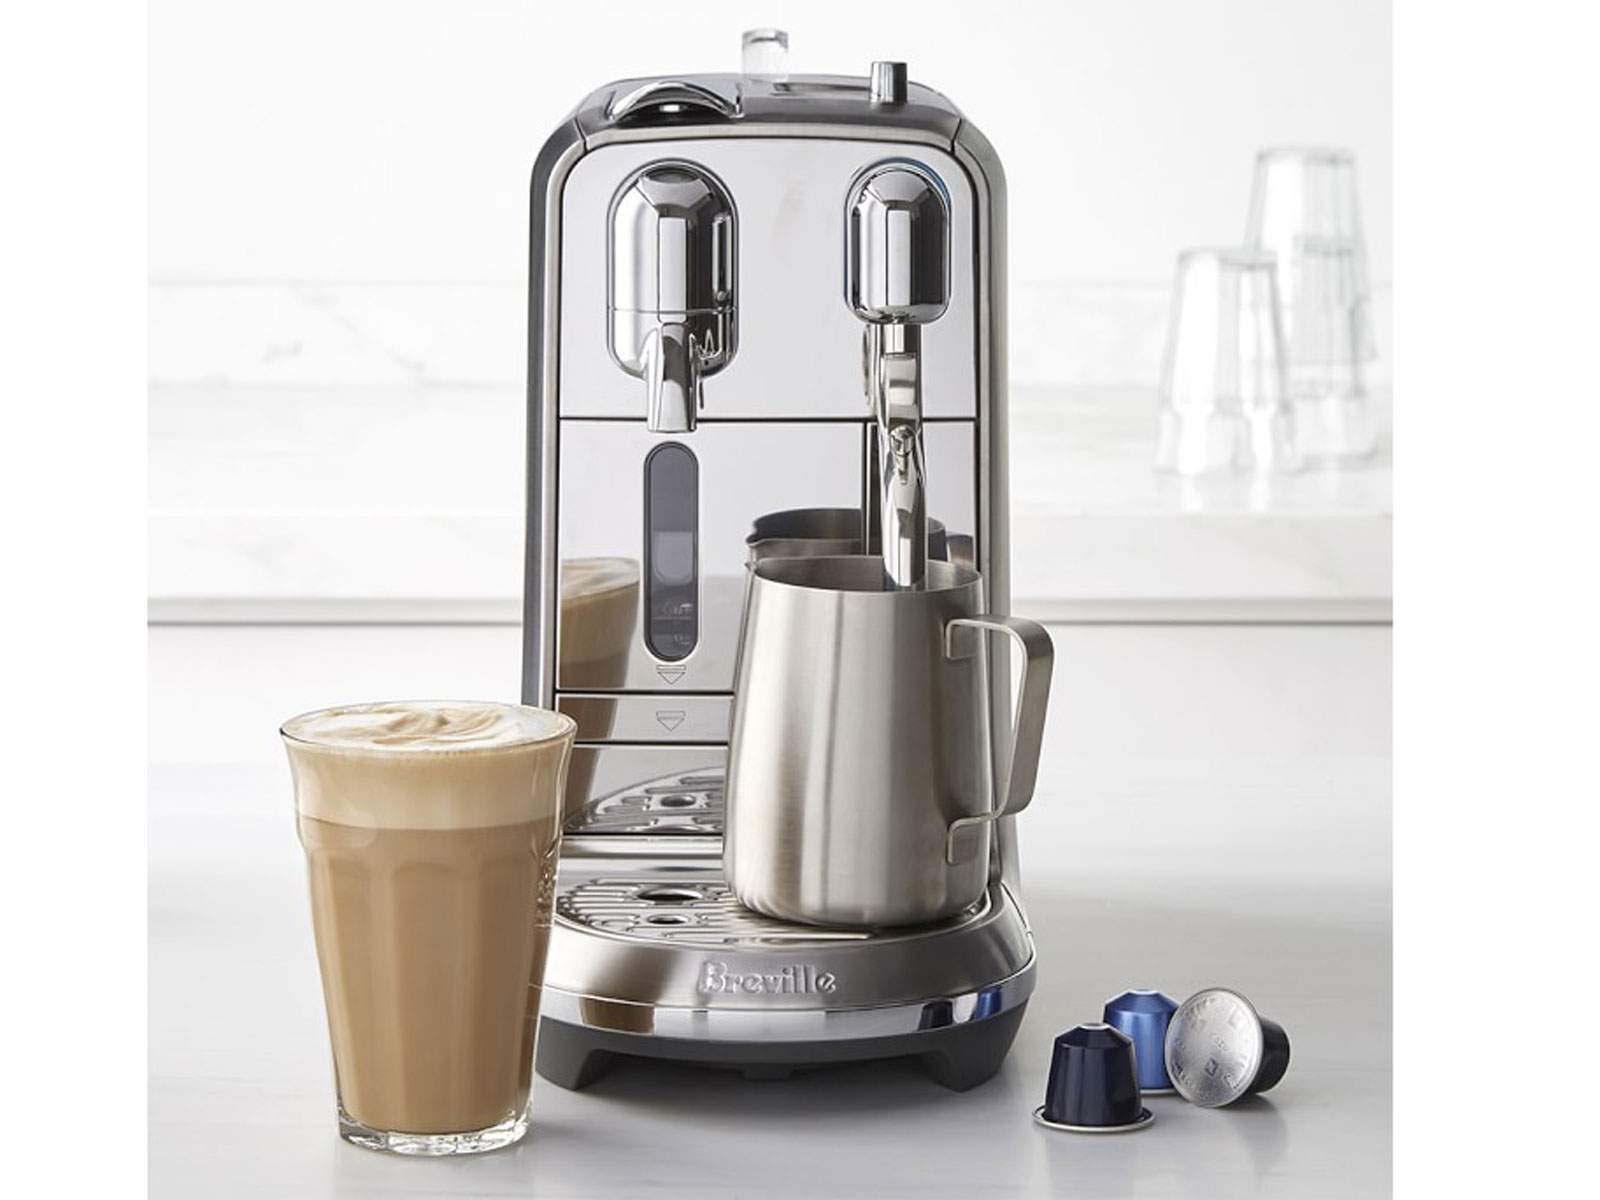 Nespresso Creatista Plus Espresso Machine by Breville